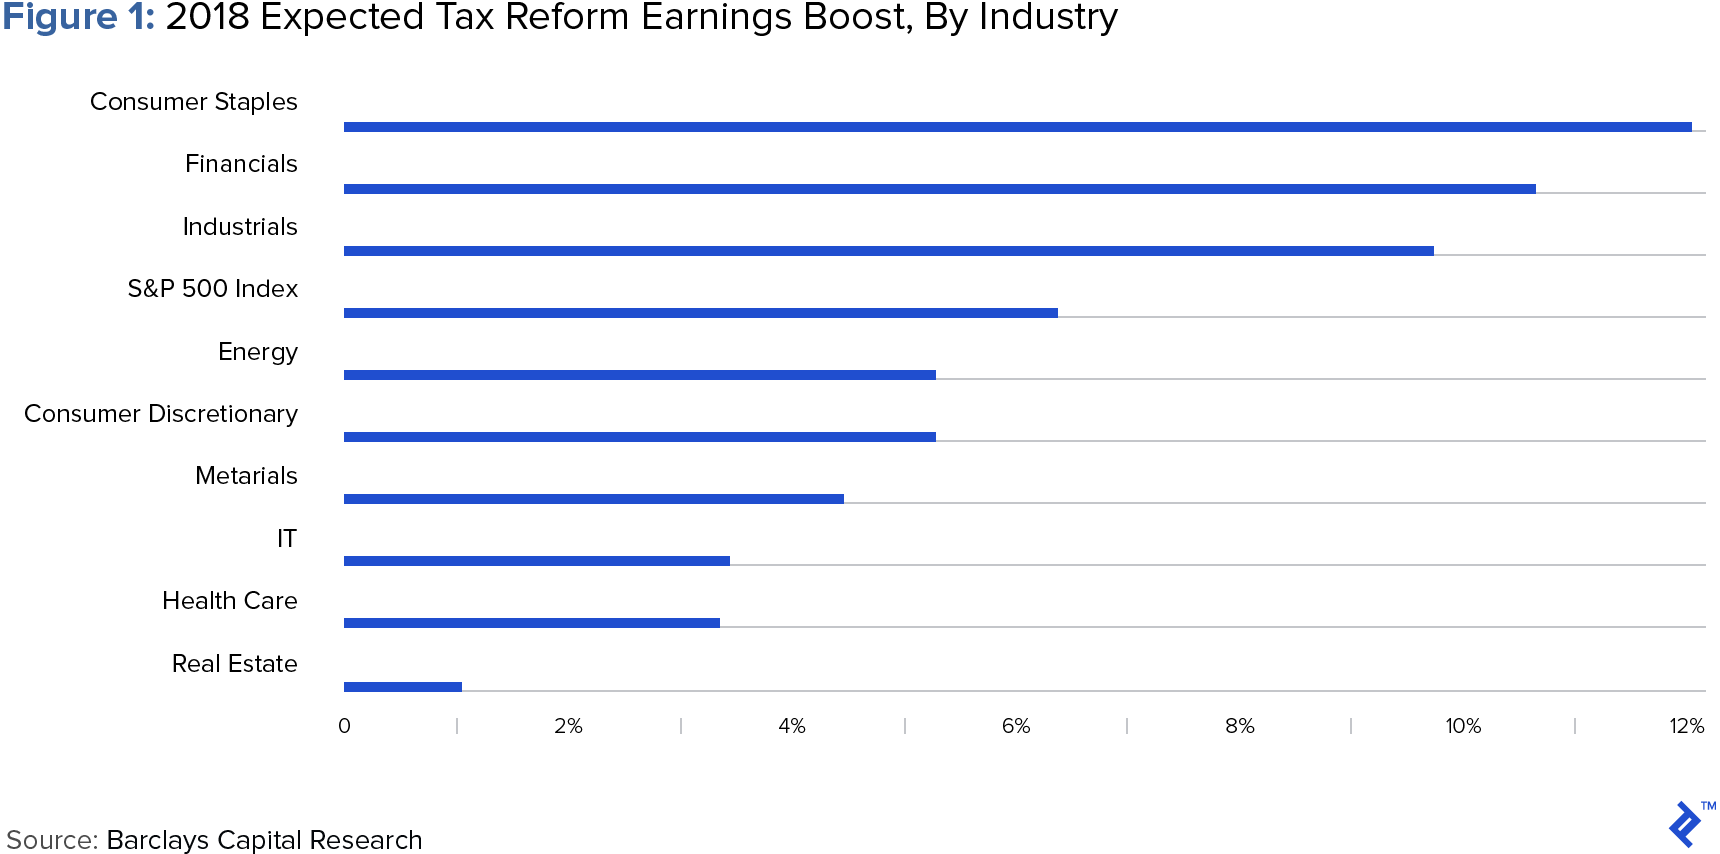 Diagram showing 2018 expected tax reform earnings boost by industry